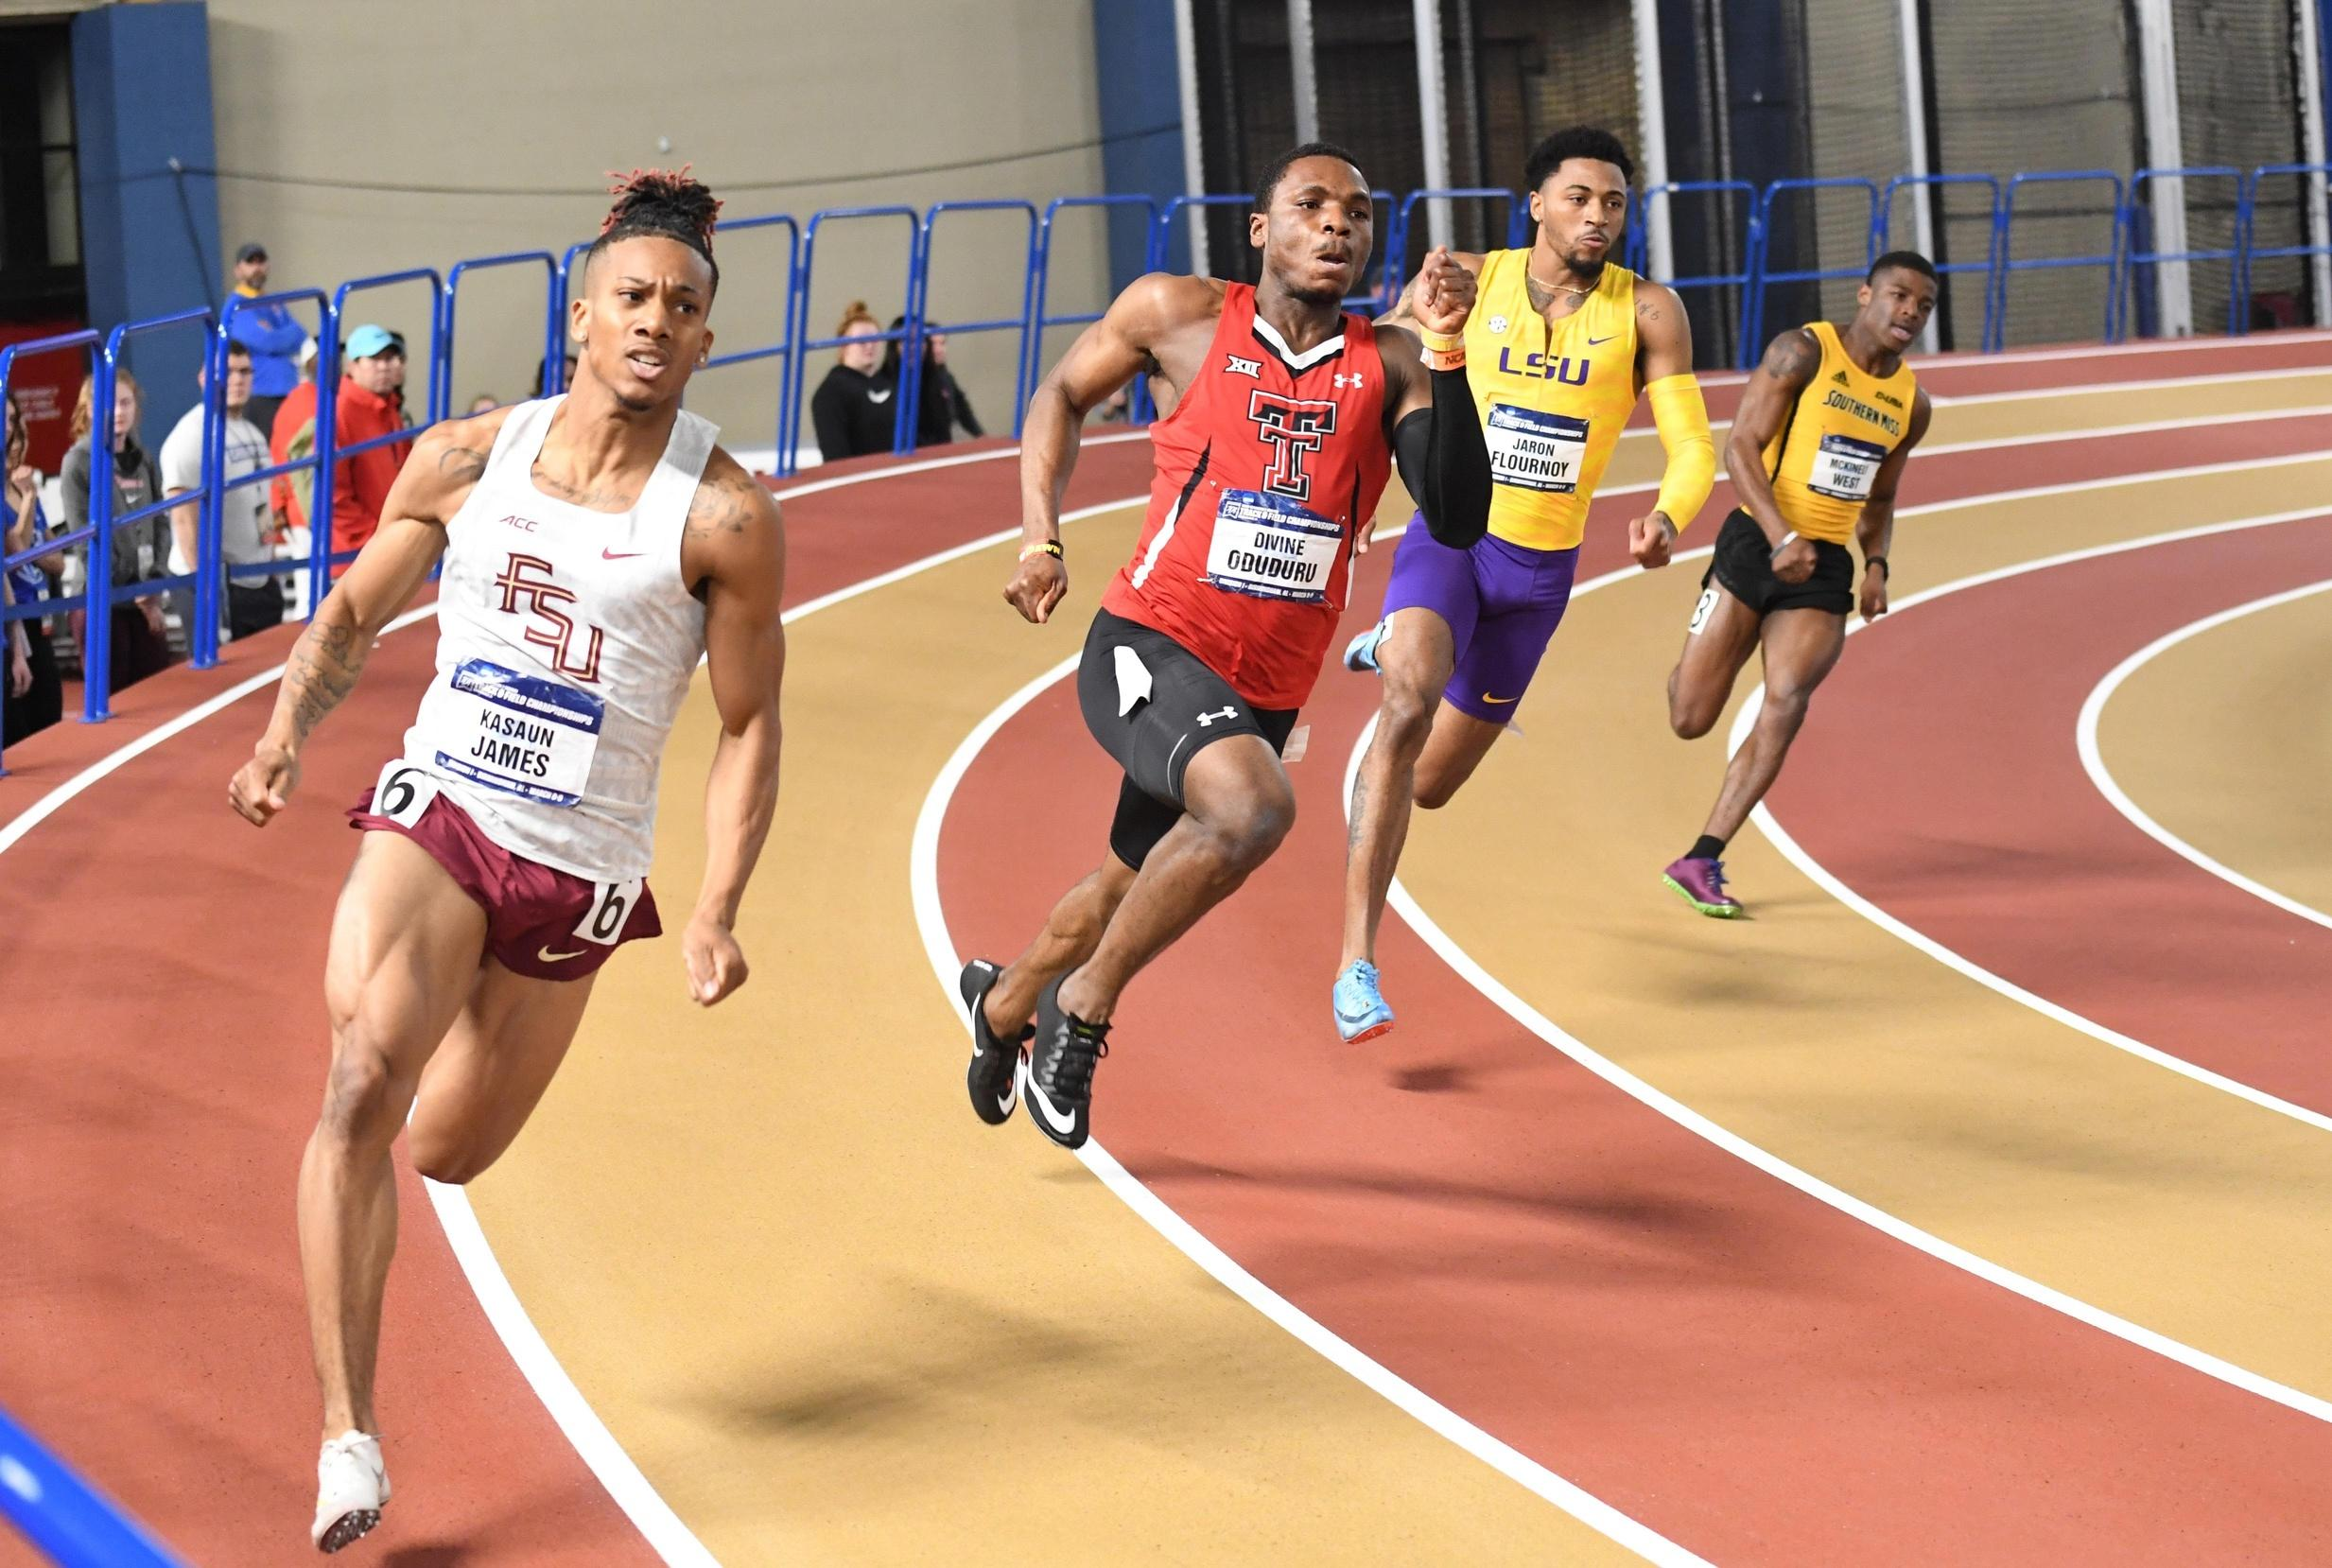 DI indoor track and field championships